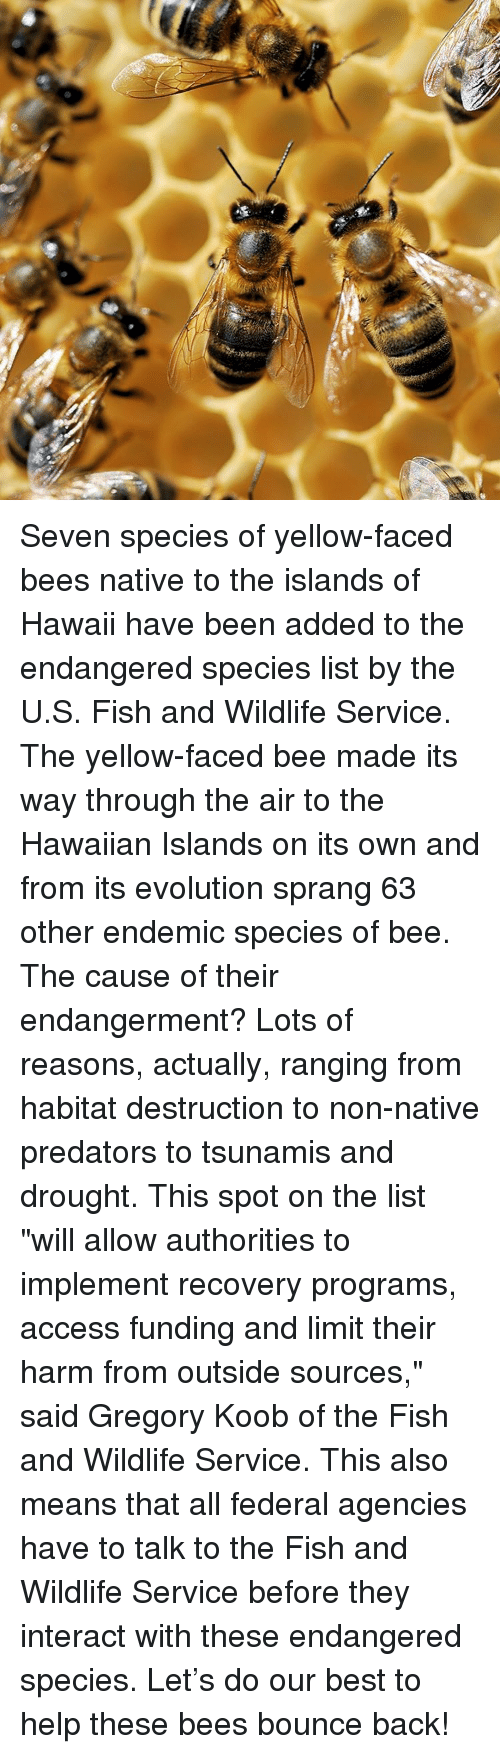 """predation: an intr Seven species of yellow-faced bees native to the islands of Hawaii have been added to the endangered species list by the U.S. Fish and Wildlife Service. The yellow-faced bee made its way through the air to the Hawaiian Islands on its own and from its evolution sprang 63 other endemic species of bee. The cause of their endangerment? Lots of reasons, actually, ranging from habitat destruction to non-native predators to tsunamis and drought. This spot on the list """"will allow authorities to implement recovery programs, access funding and limit their harm from outside sources,"""" said Gregory Koob of the Fish and Wildlife Service. This also means that all federal agencies have to talk to the Fish and Wildlife Service before they interact with these endangered species. Let's do our best to help these bees bounce back!"""